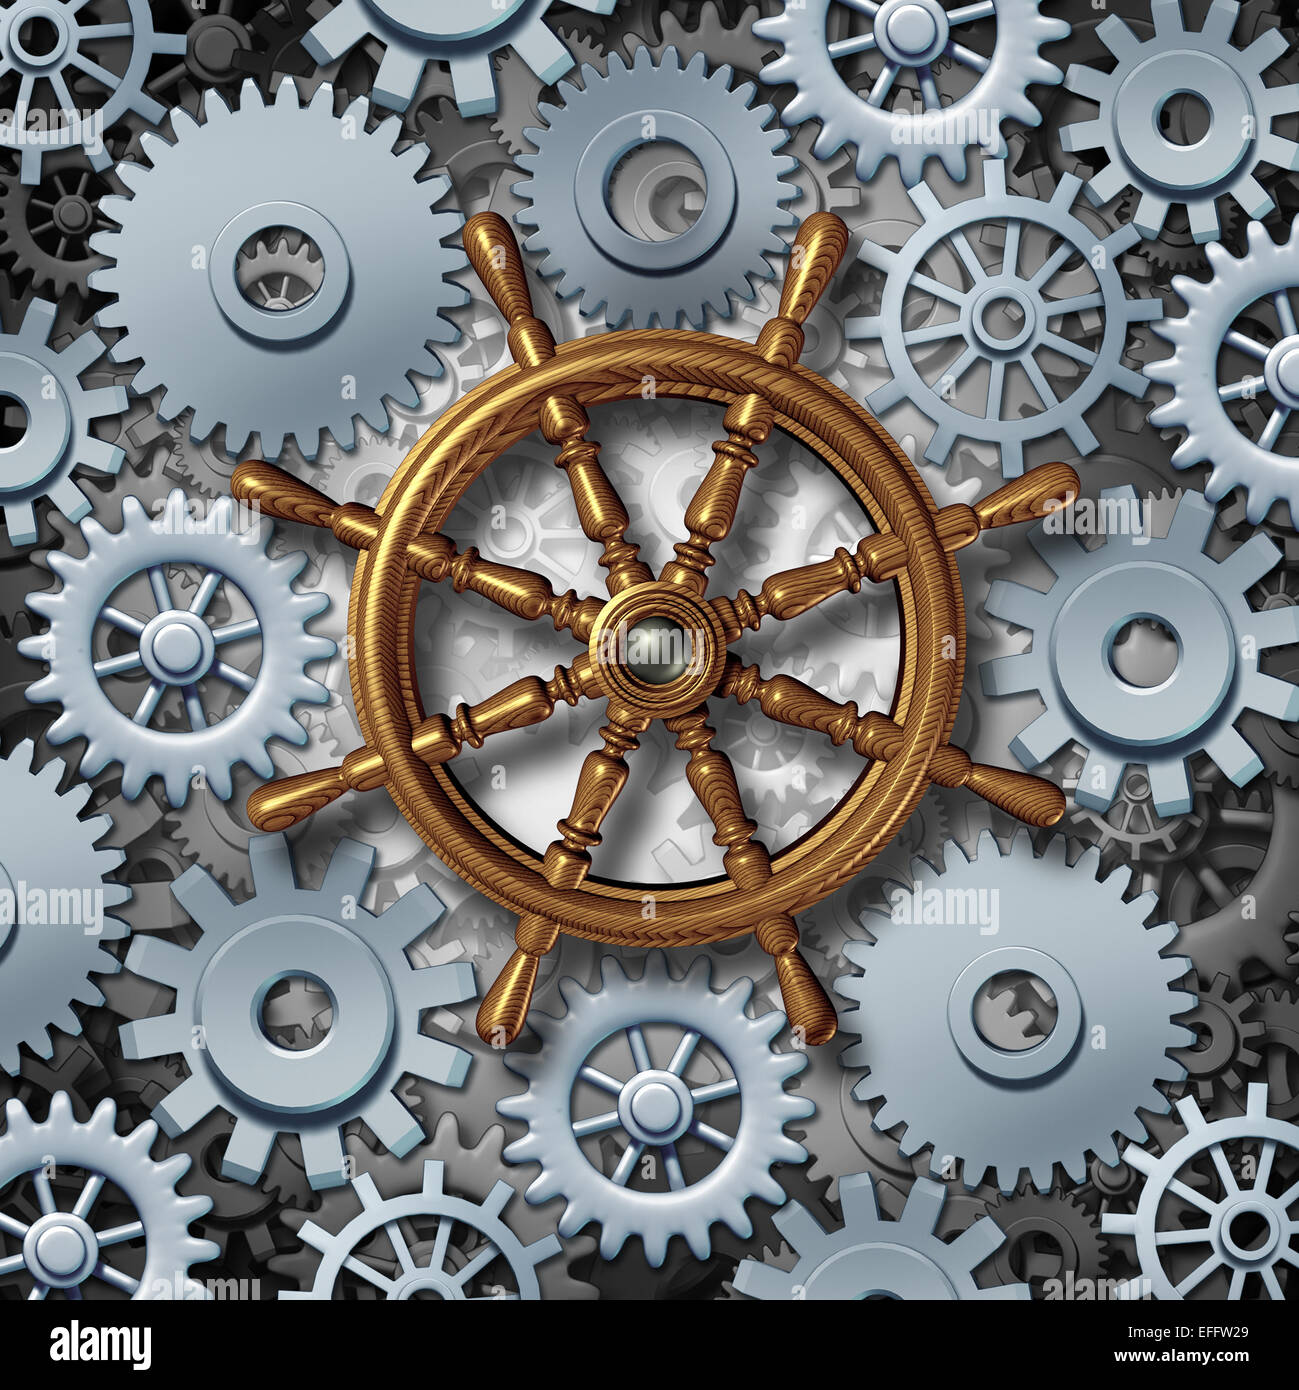 Business navigation concept as a marine boat steering wheel connected to gears and cog wheels as a metaphor for - Stock Image